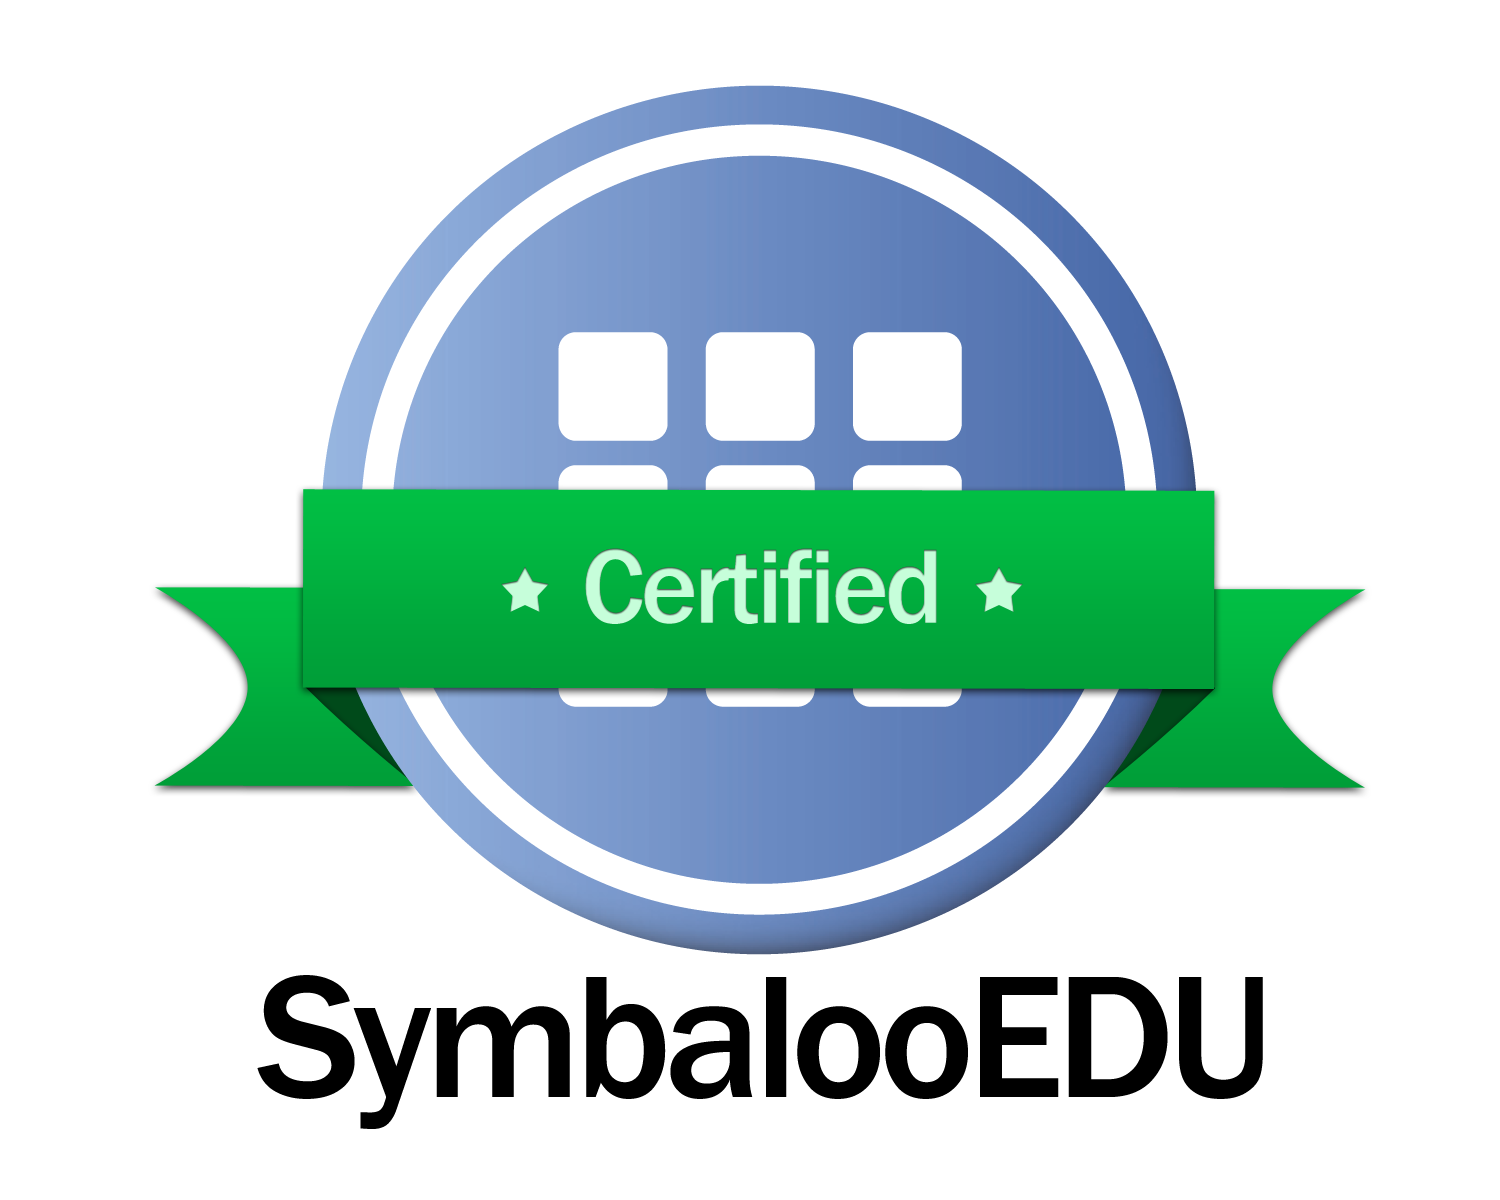 Symbaloo EDU Certified